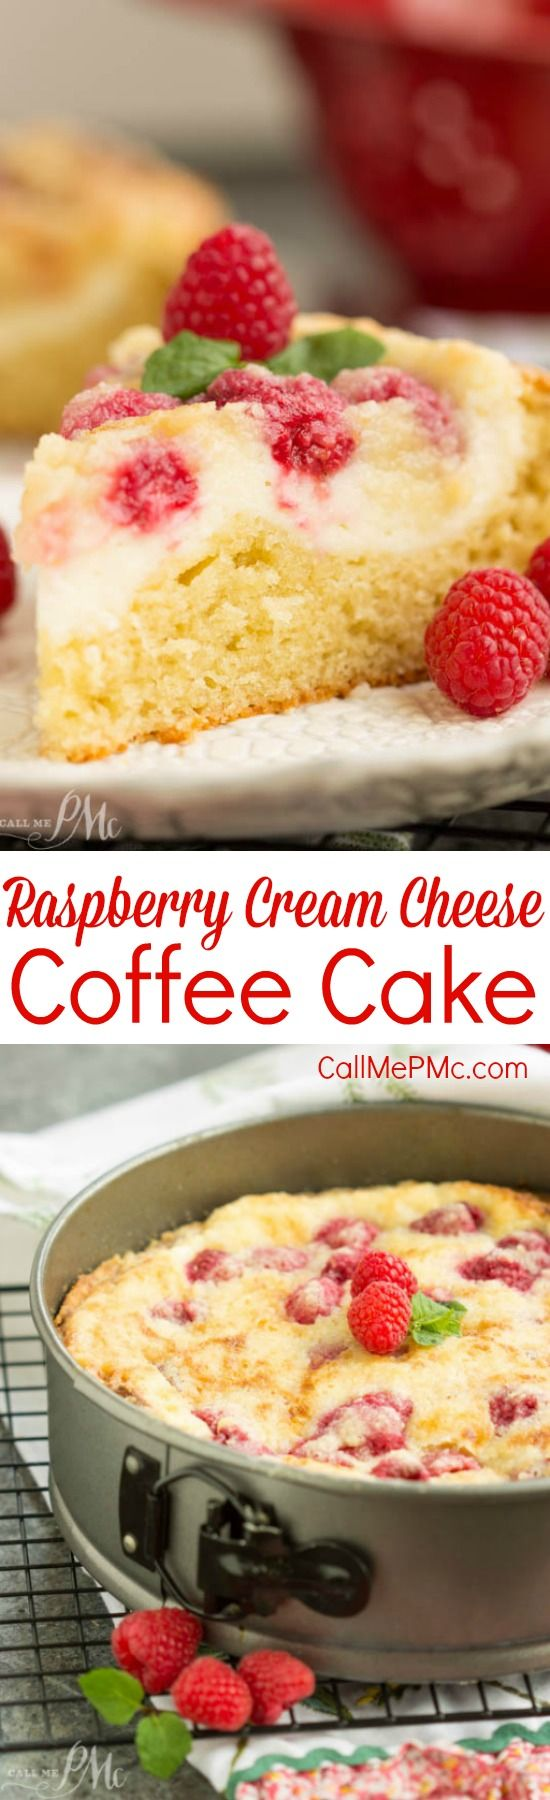 Raspberry Streusel Cream Cheese Coffee Cake is moist and tender with a ribbon of cream cheese and fresh raspberries running through it